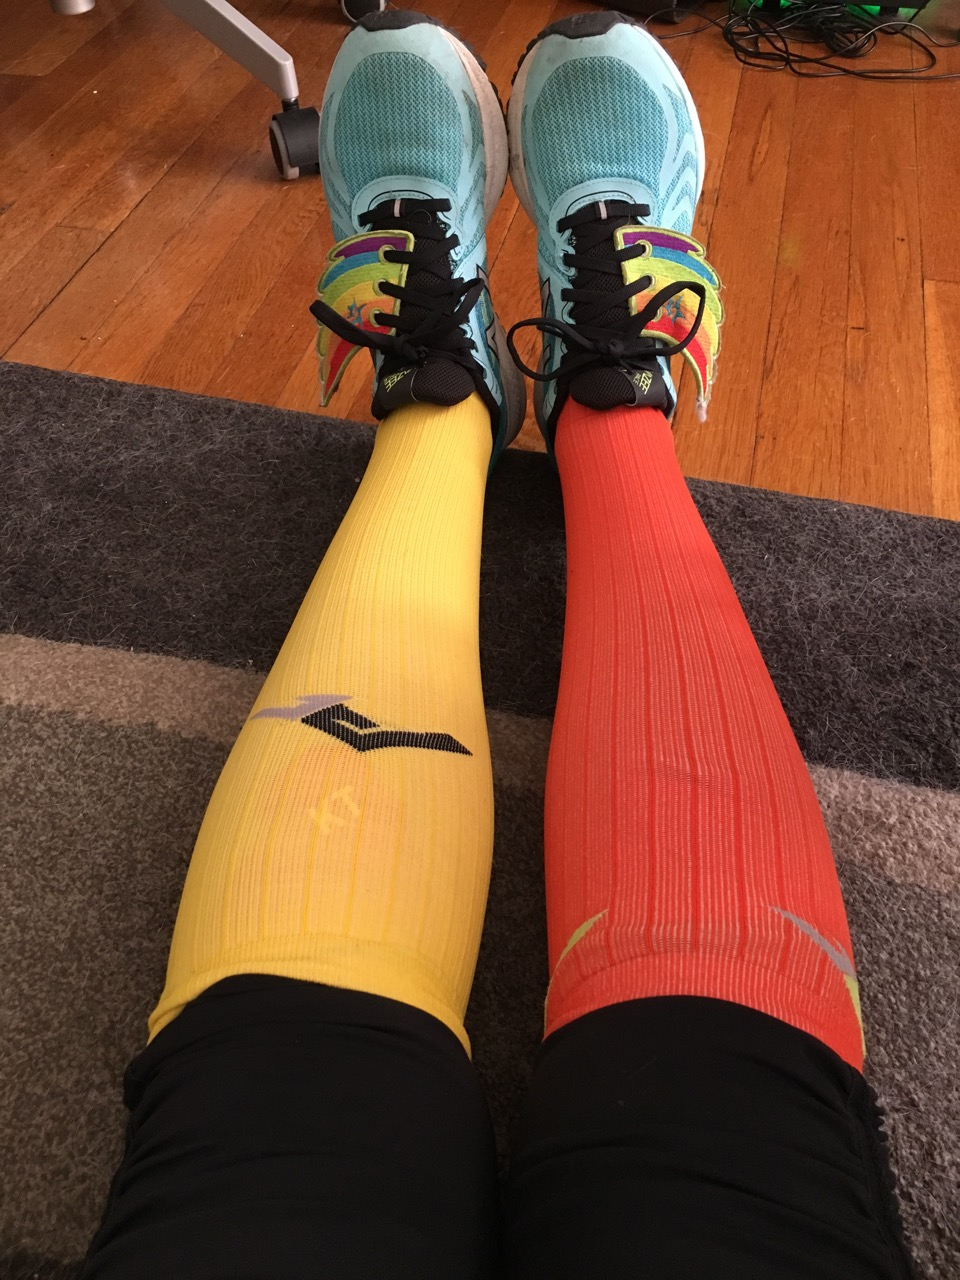 Of course I had to #TwoPairDontCare with retro PRO Compression socks